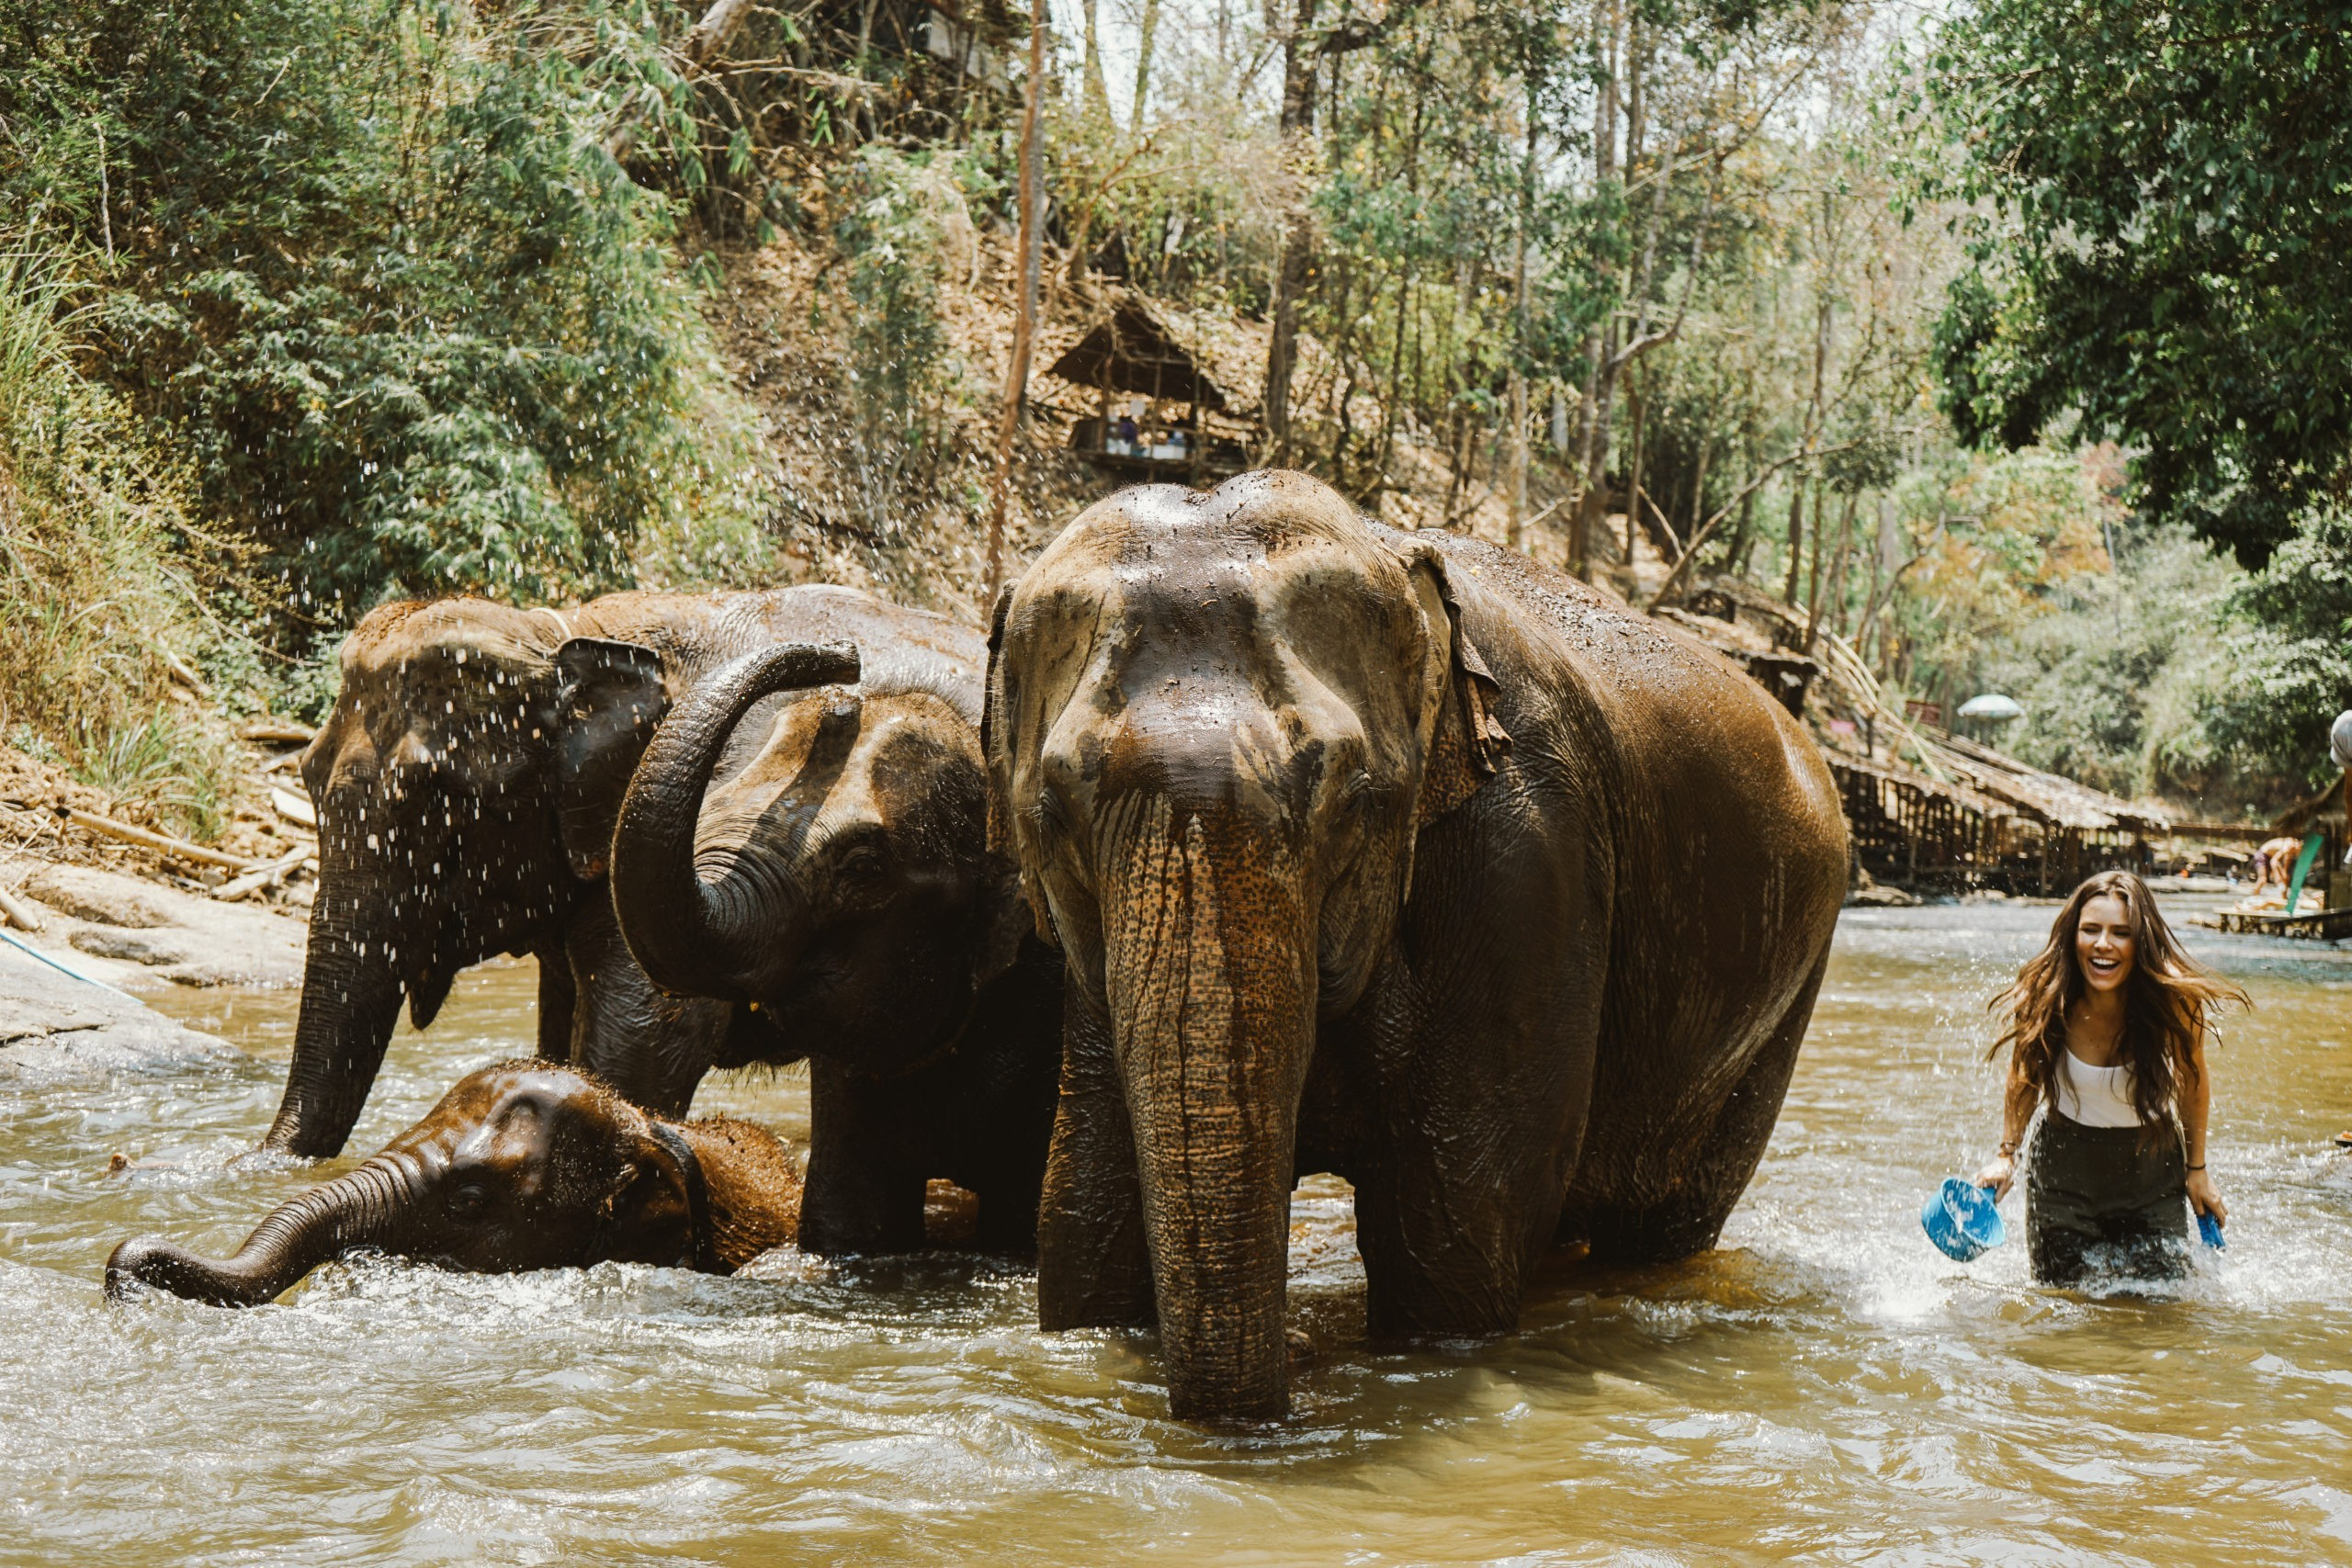 A group of elephants playing in a river